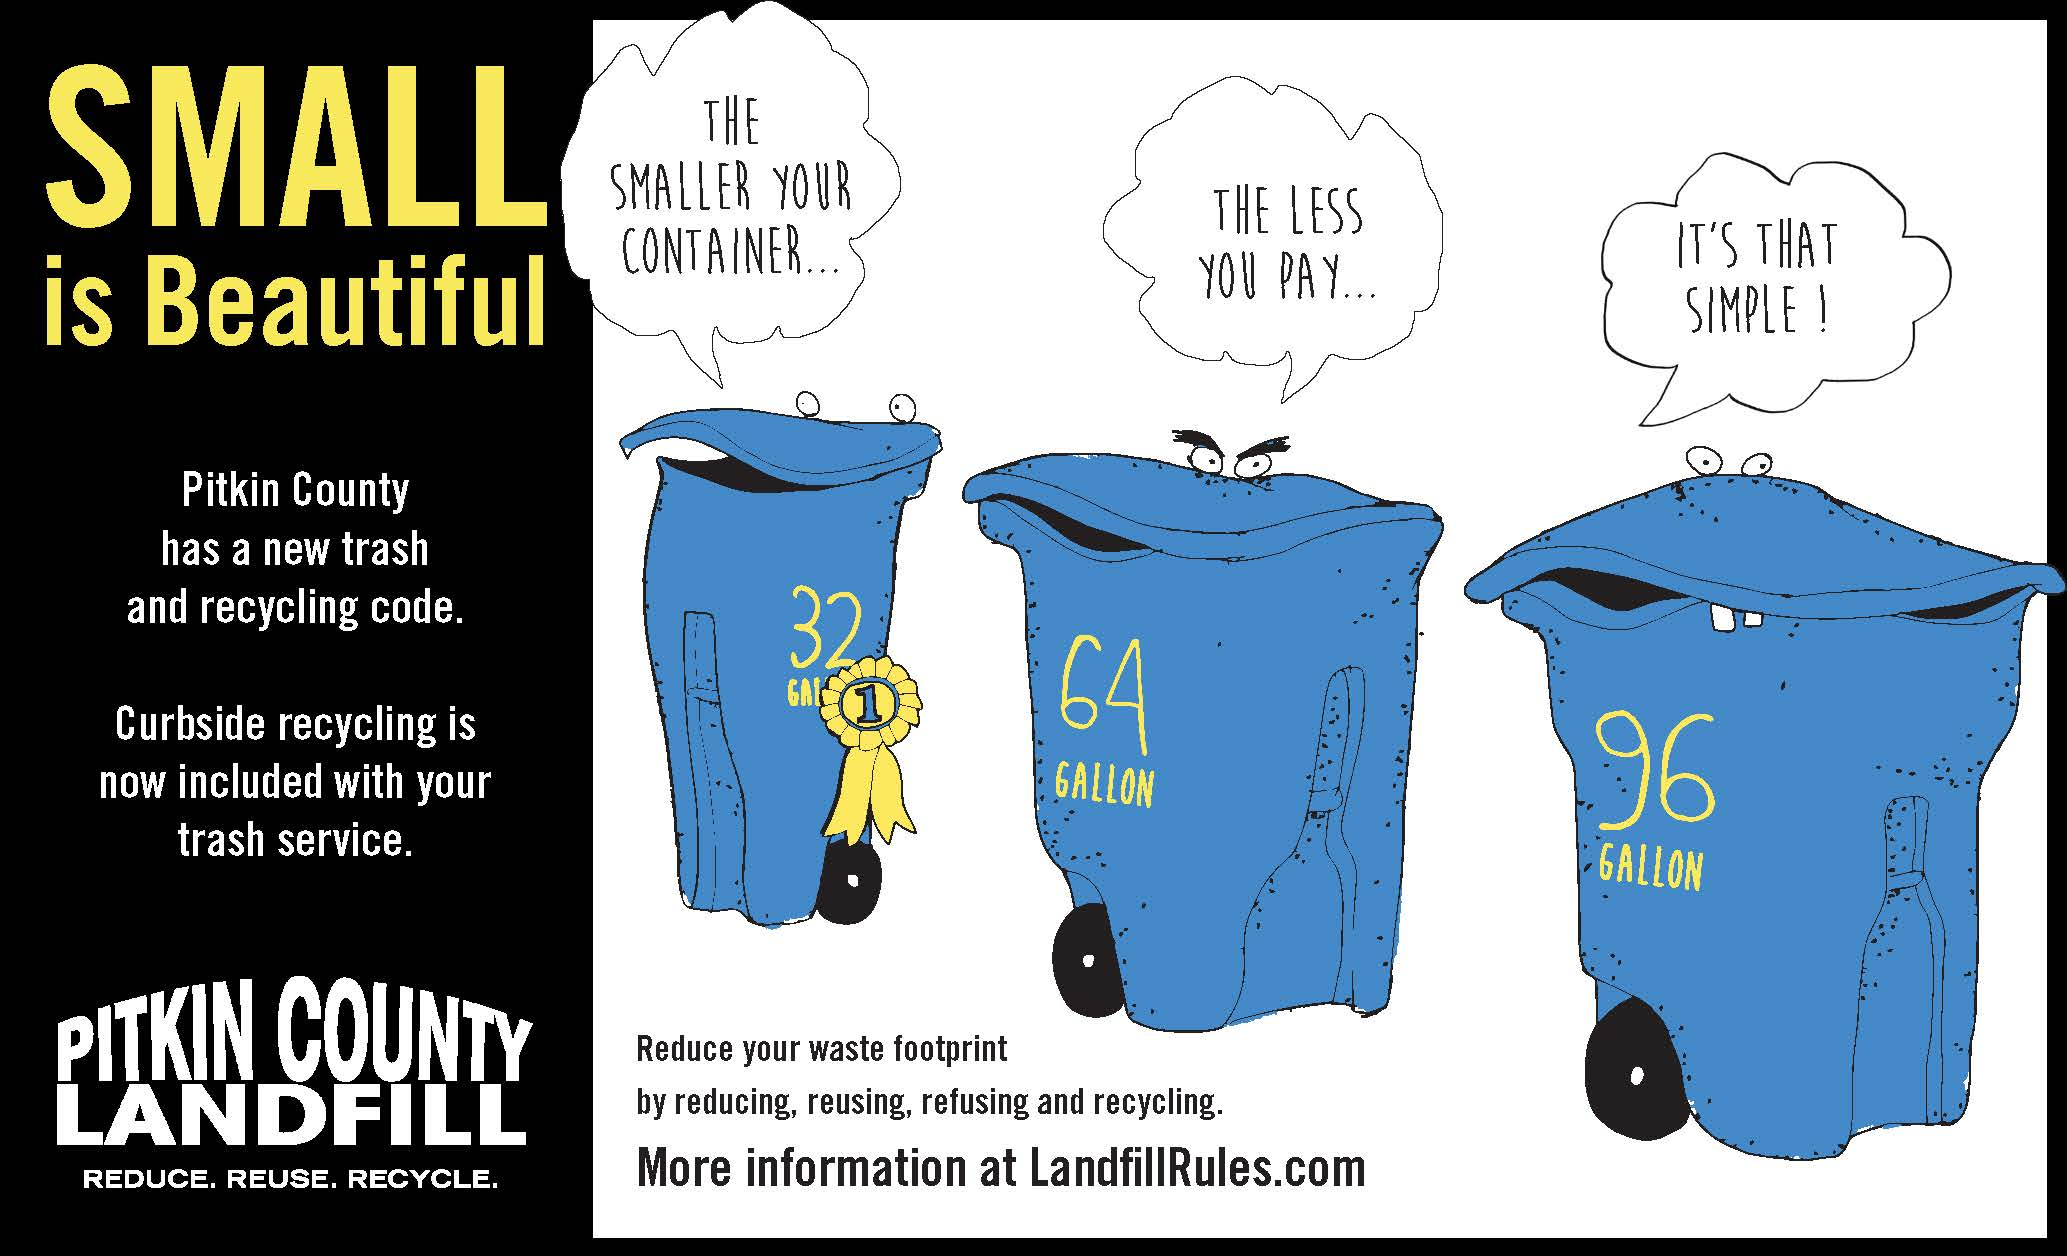 Pitco-Landfill-Half-ADN-021519-Small-is-Beautiful (1).jpg